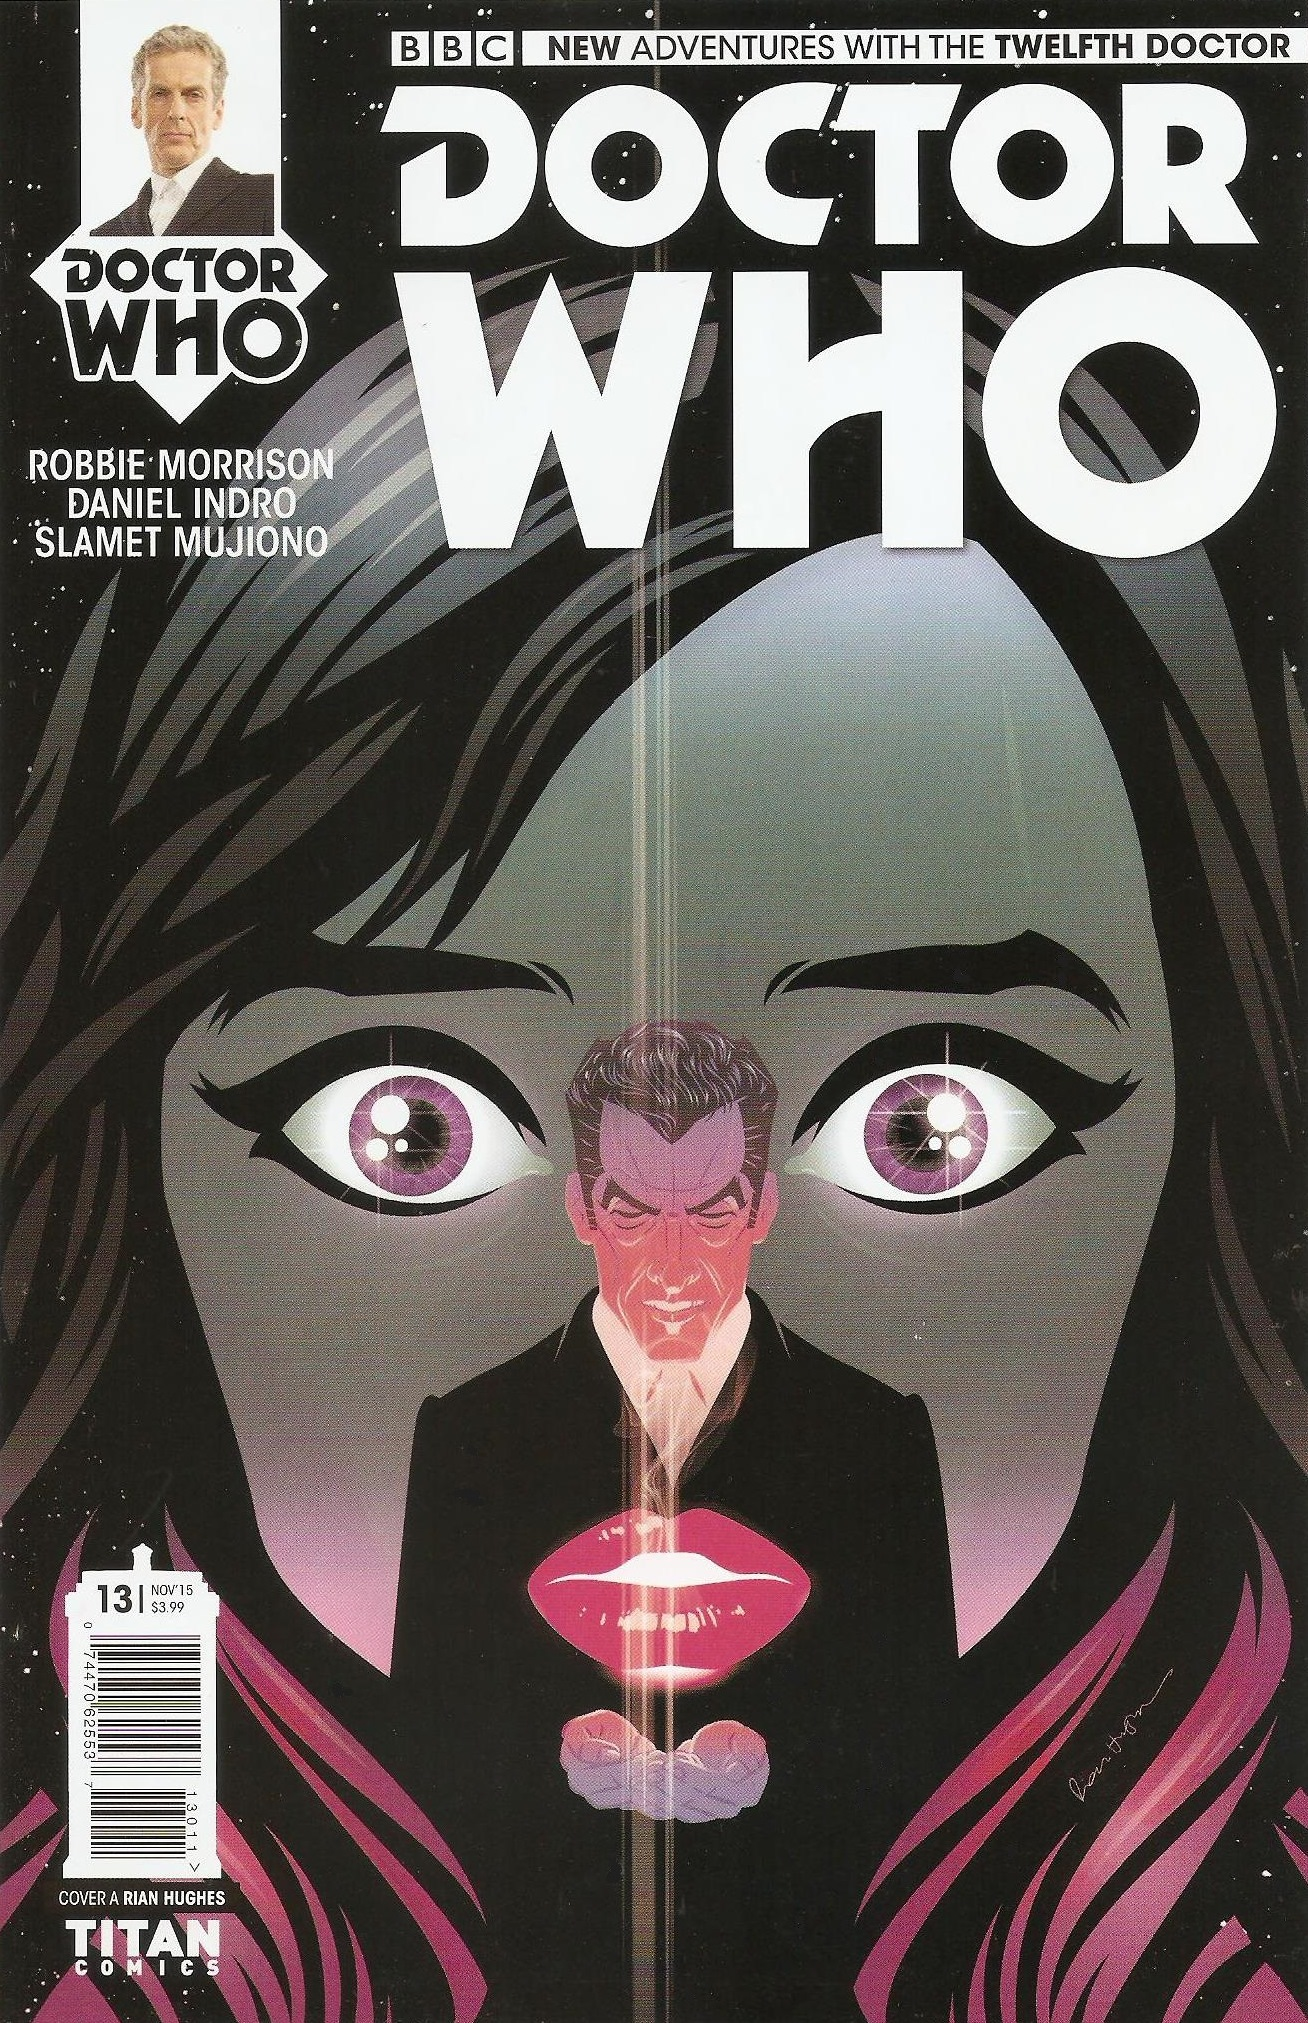 Twelfth doctor issue 13a